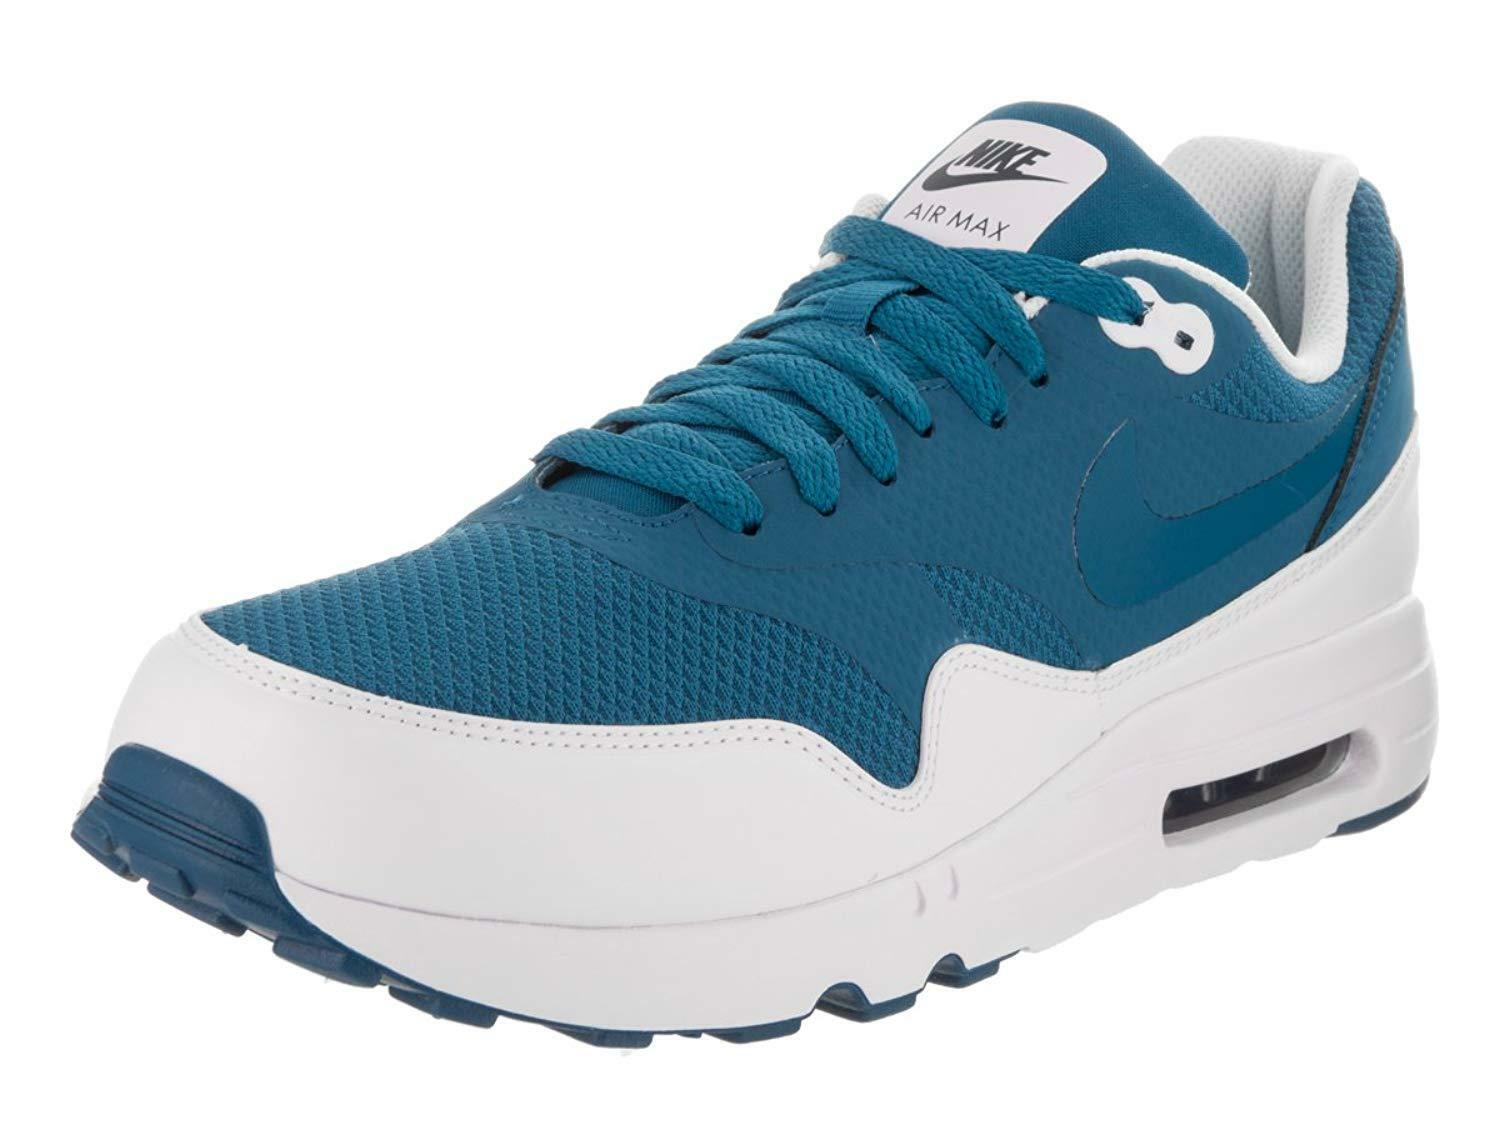 Nike Air Max 1 Ultra 2.0 ESS Mens 875679 402 White Blue Running Shoes Size 12